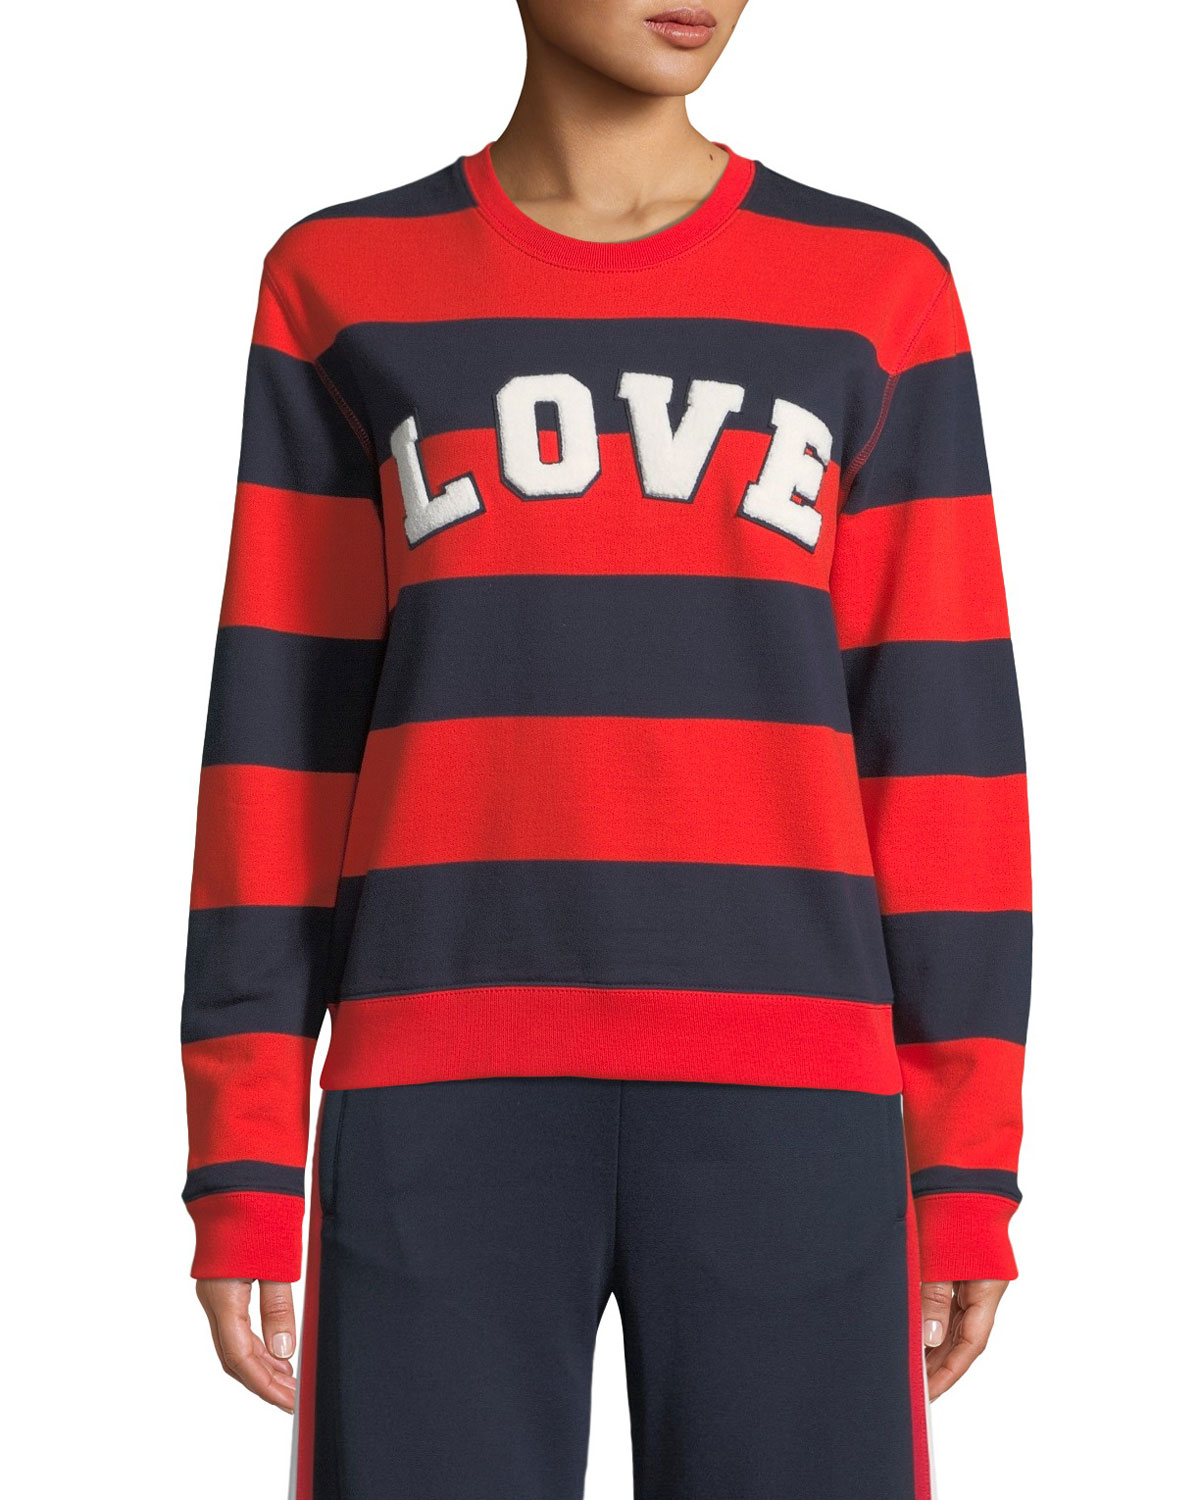 1a80152549d1 Tory Sport Love Striped Yarn-Dyed Graphic Sweatshirt